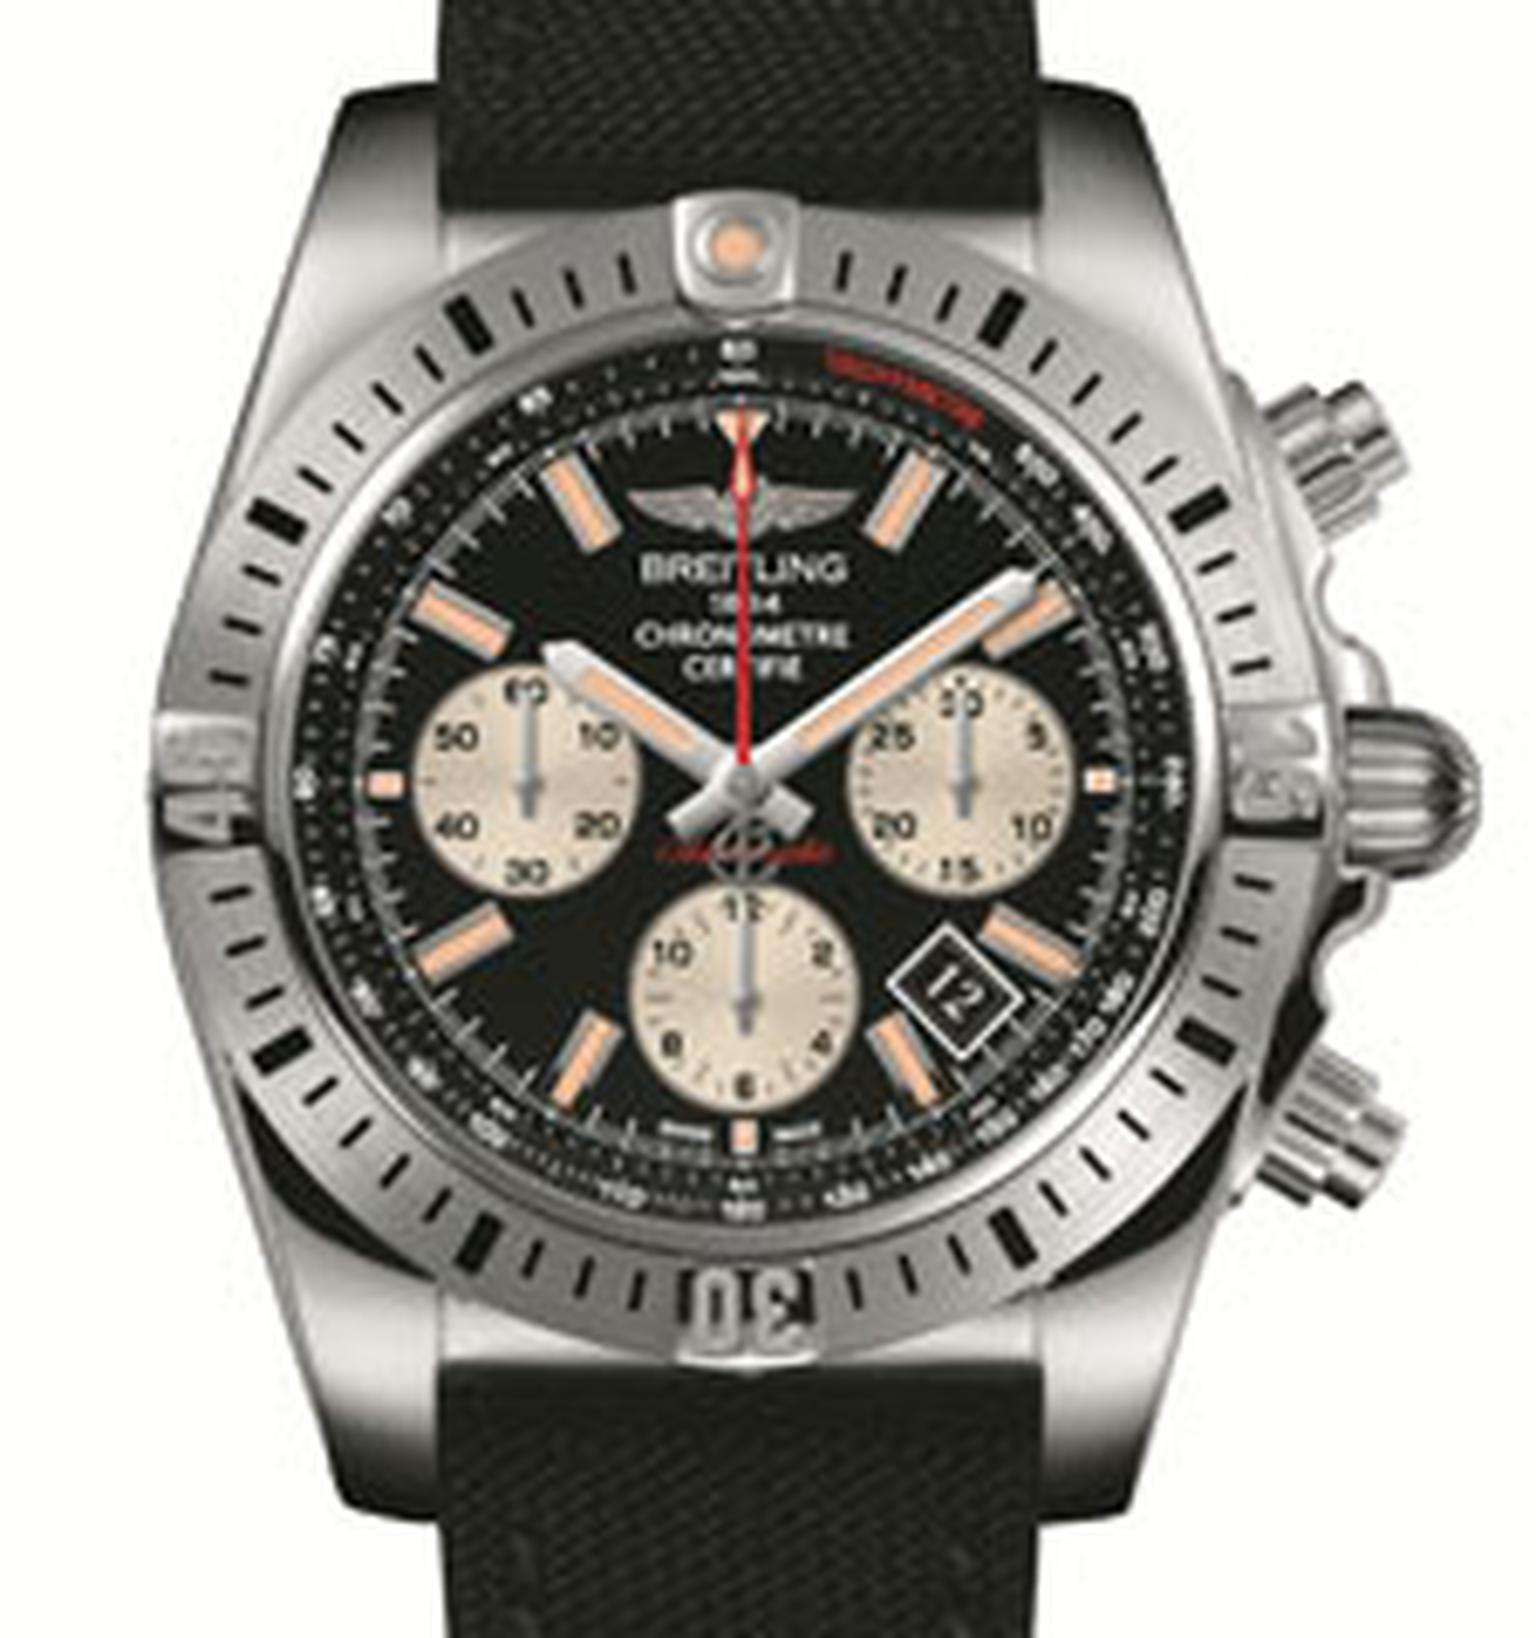 Breitling HP